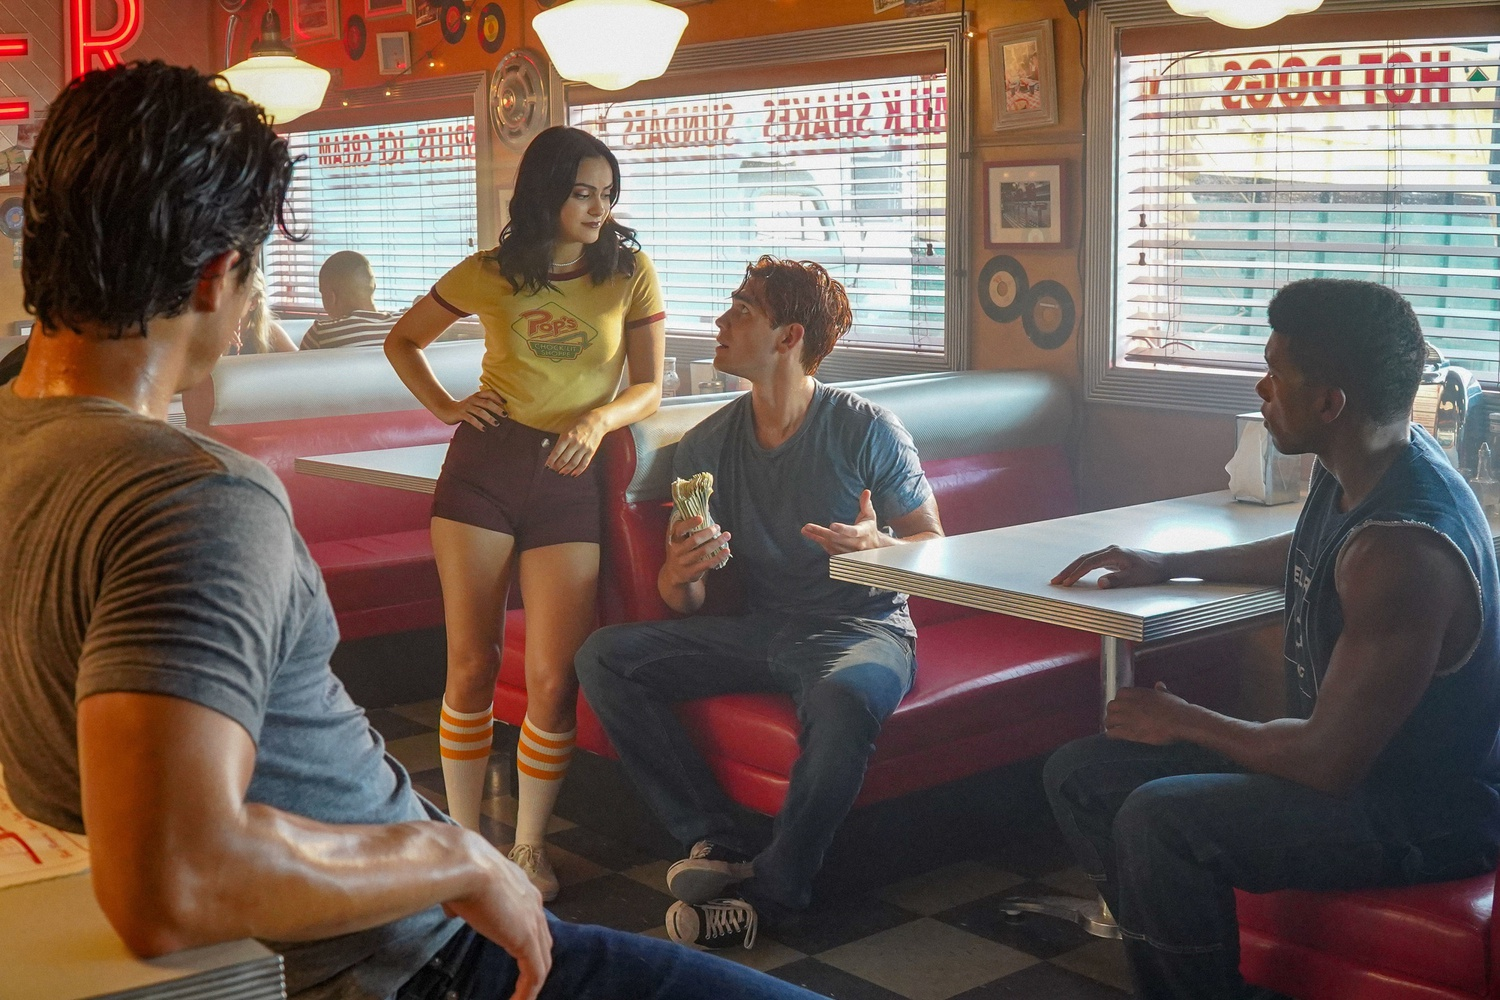 Production for the popular CW show, 'Riverdale,' has resumed despite the COVID-19 pandemic.